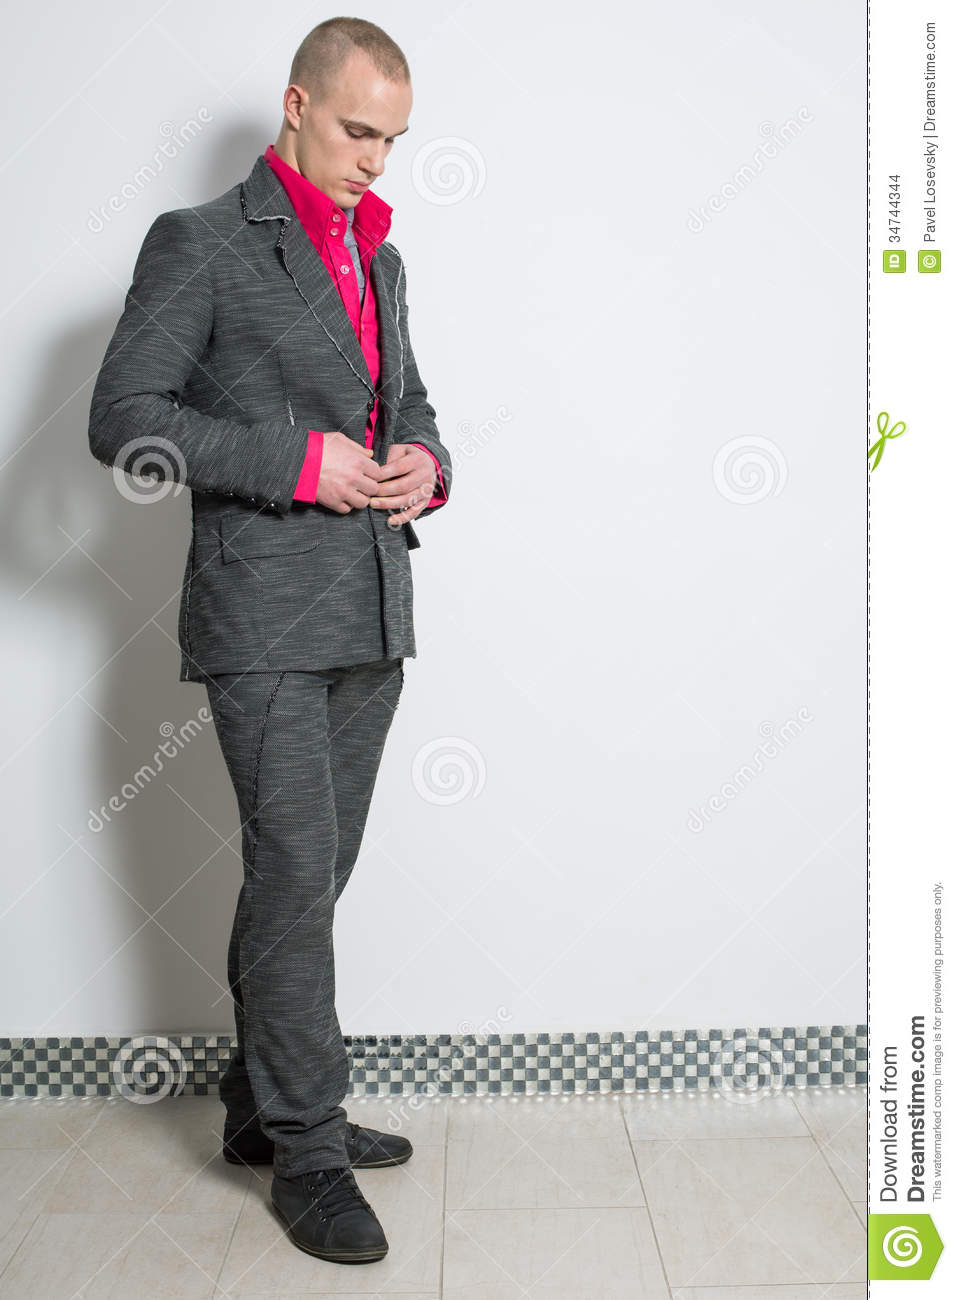 Download A Man In A Red Shirt Buttons Fashion Gray Suit Stock Illustration - Illustration of body, hair: 34744344